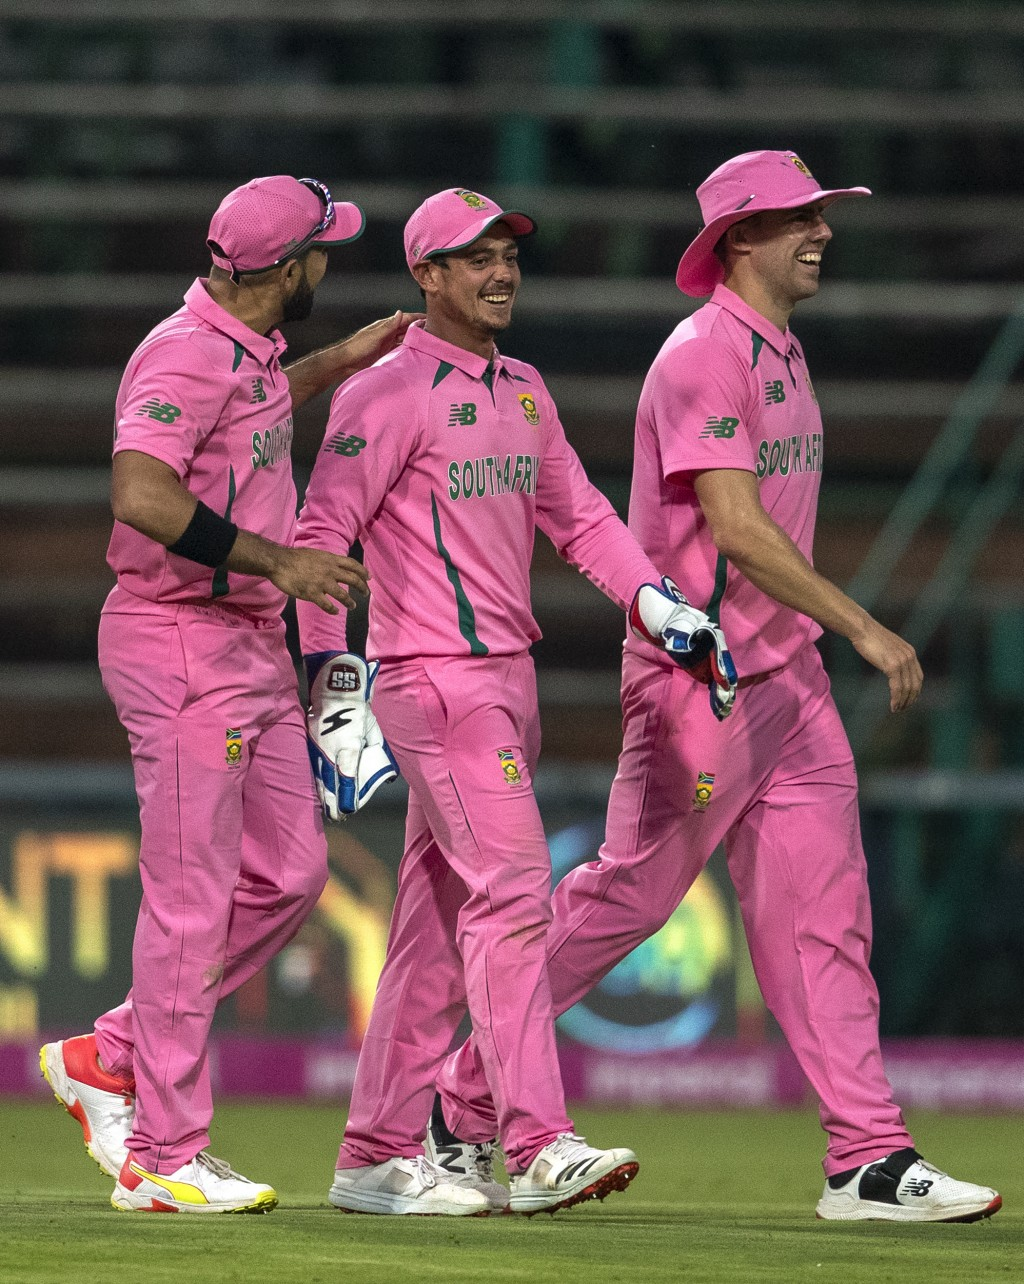 South Africa's wicketkeeper Quinton de Kock, middle, celebrates with teammates after running out Pakistan's batsman Fakhar Zaman for 193 runs during t...